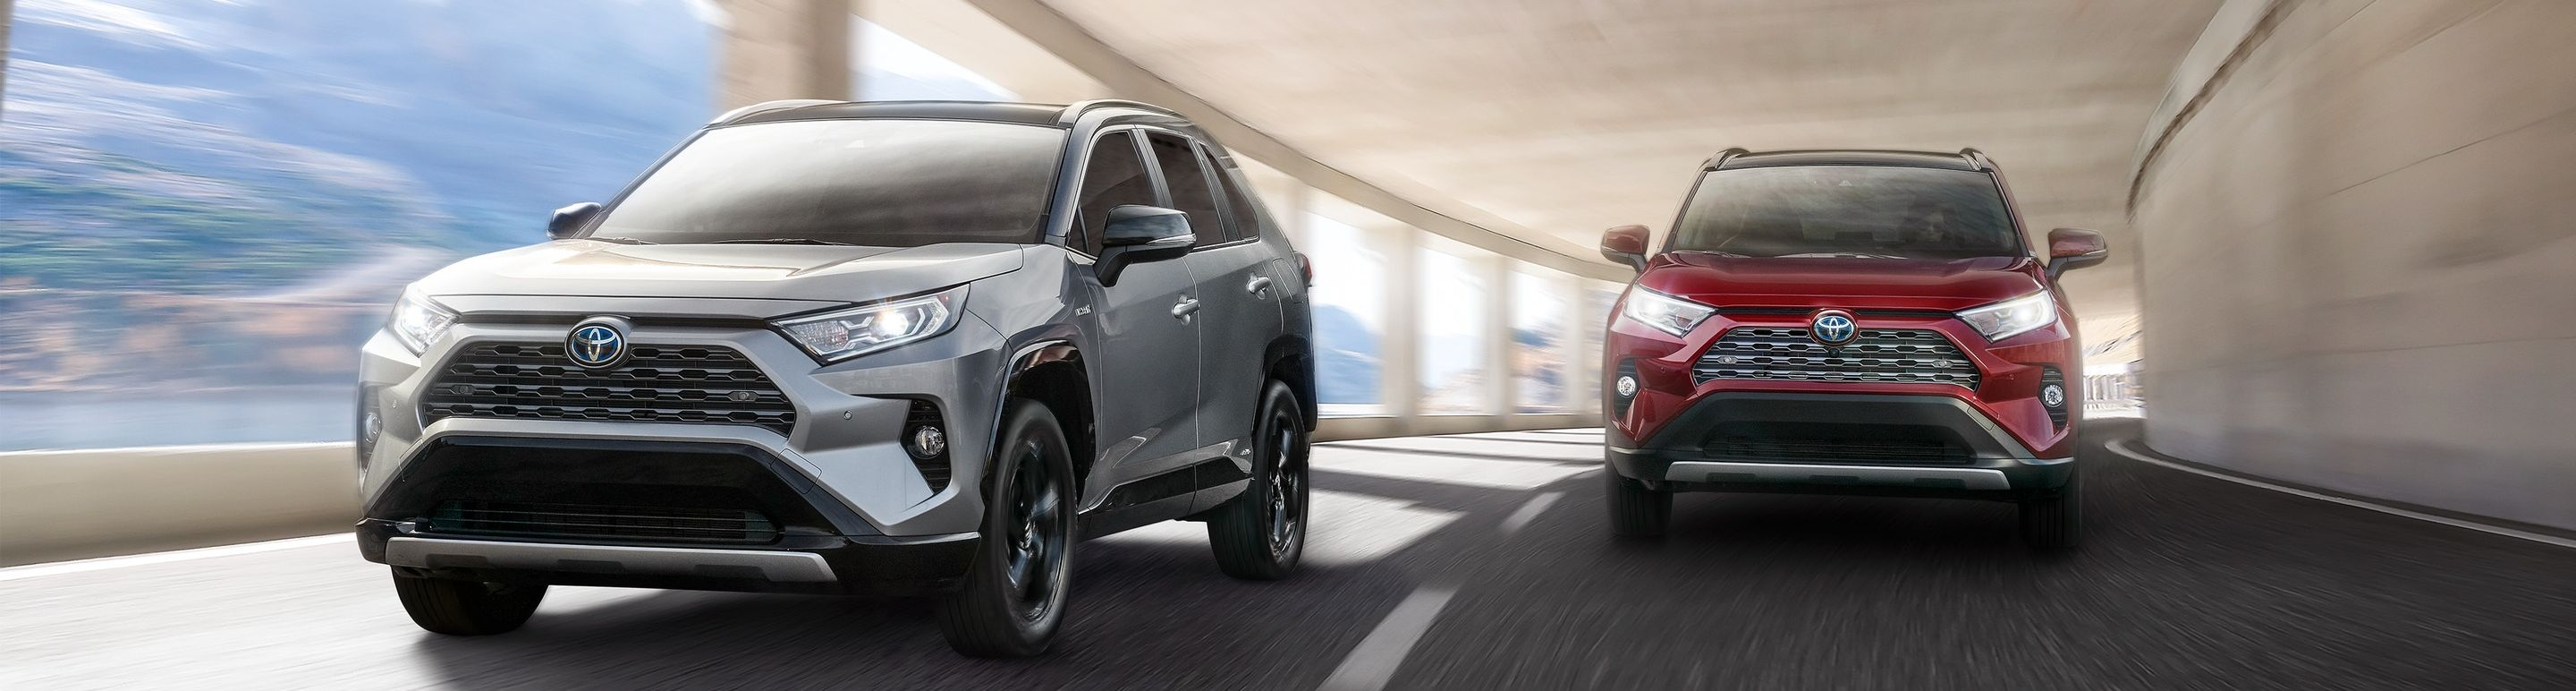 2019 Toyota RAV4 Key Features near Queens, NY